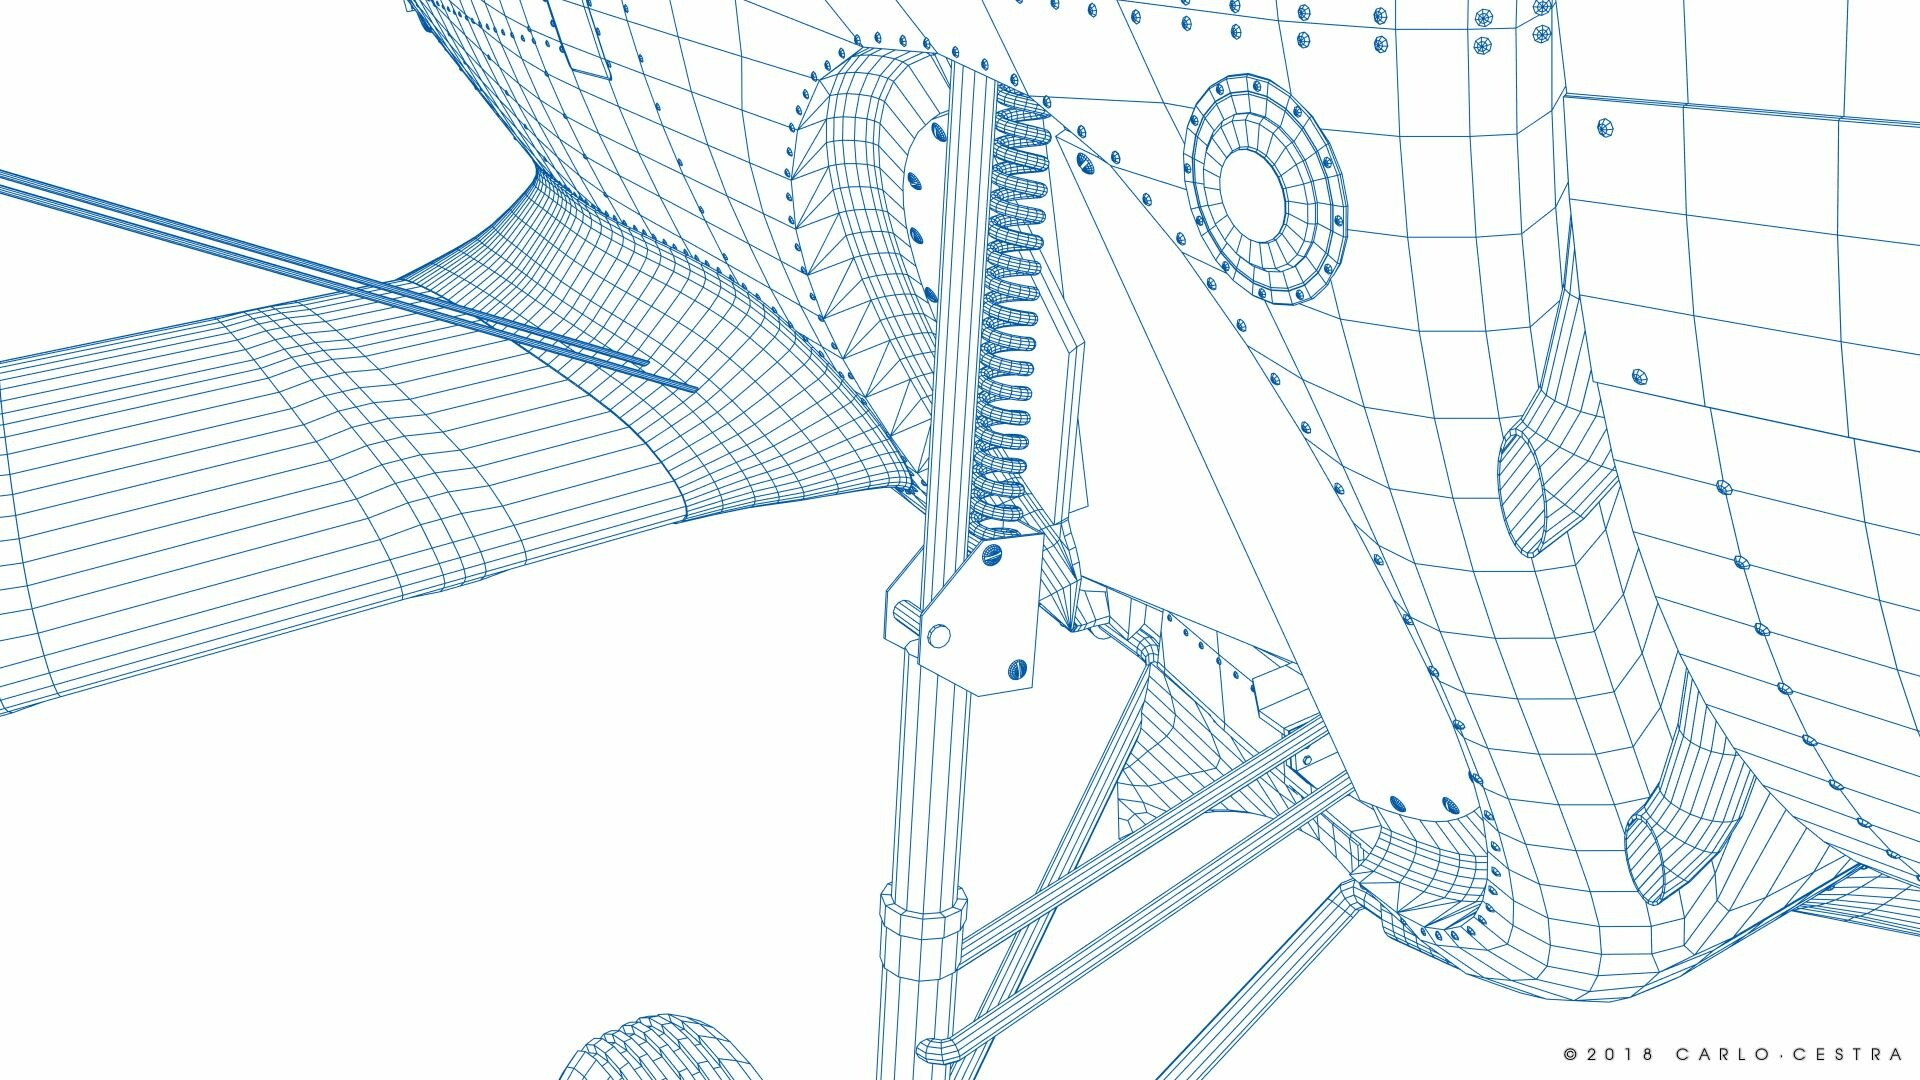 Carlo cestra preview wireframe 016